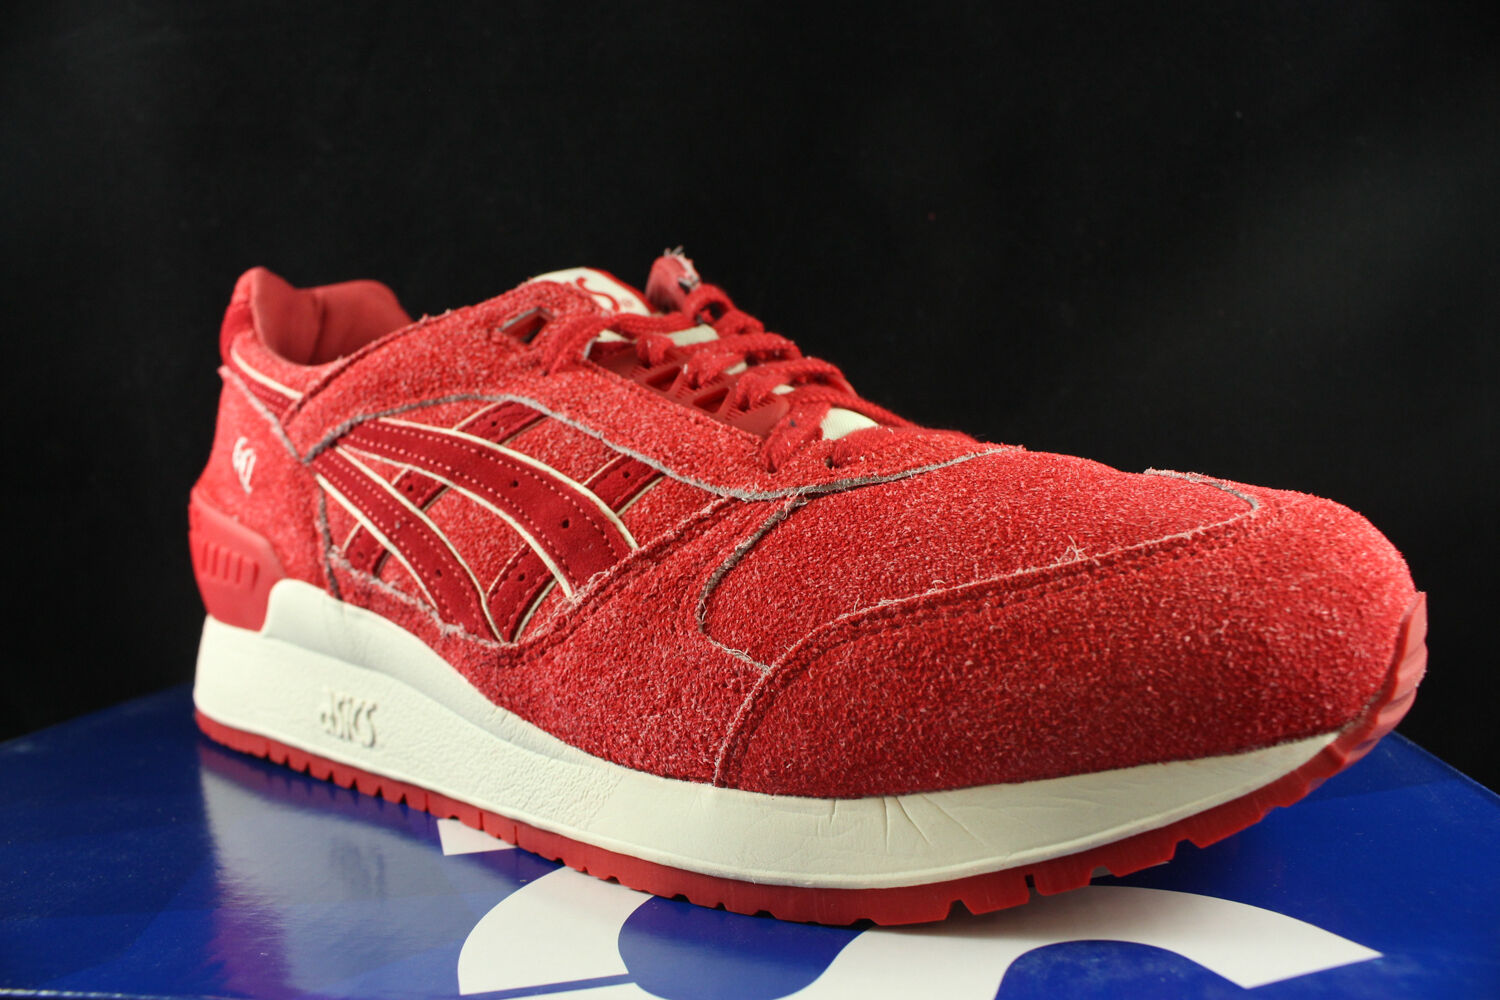 Asics gel respector am 4. 4. 4. juli independence day pack rot h6u3l 2525 sz 10,5 a7bbf1